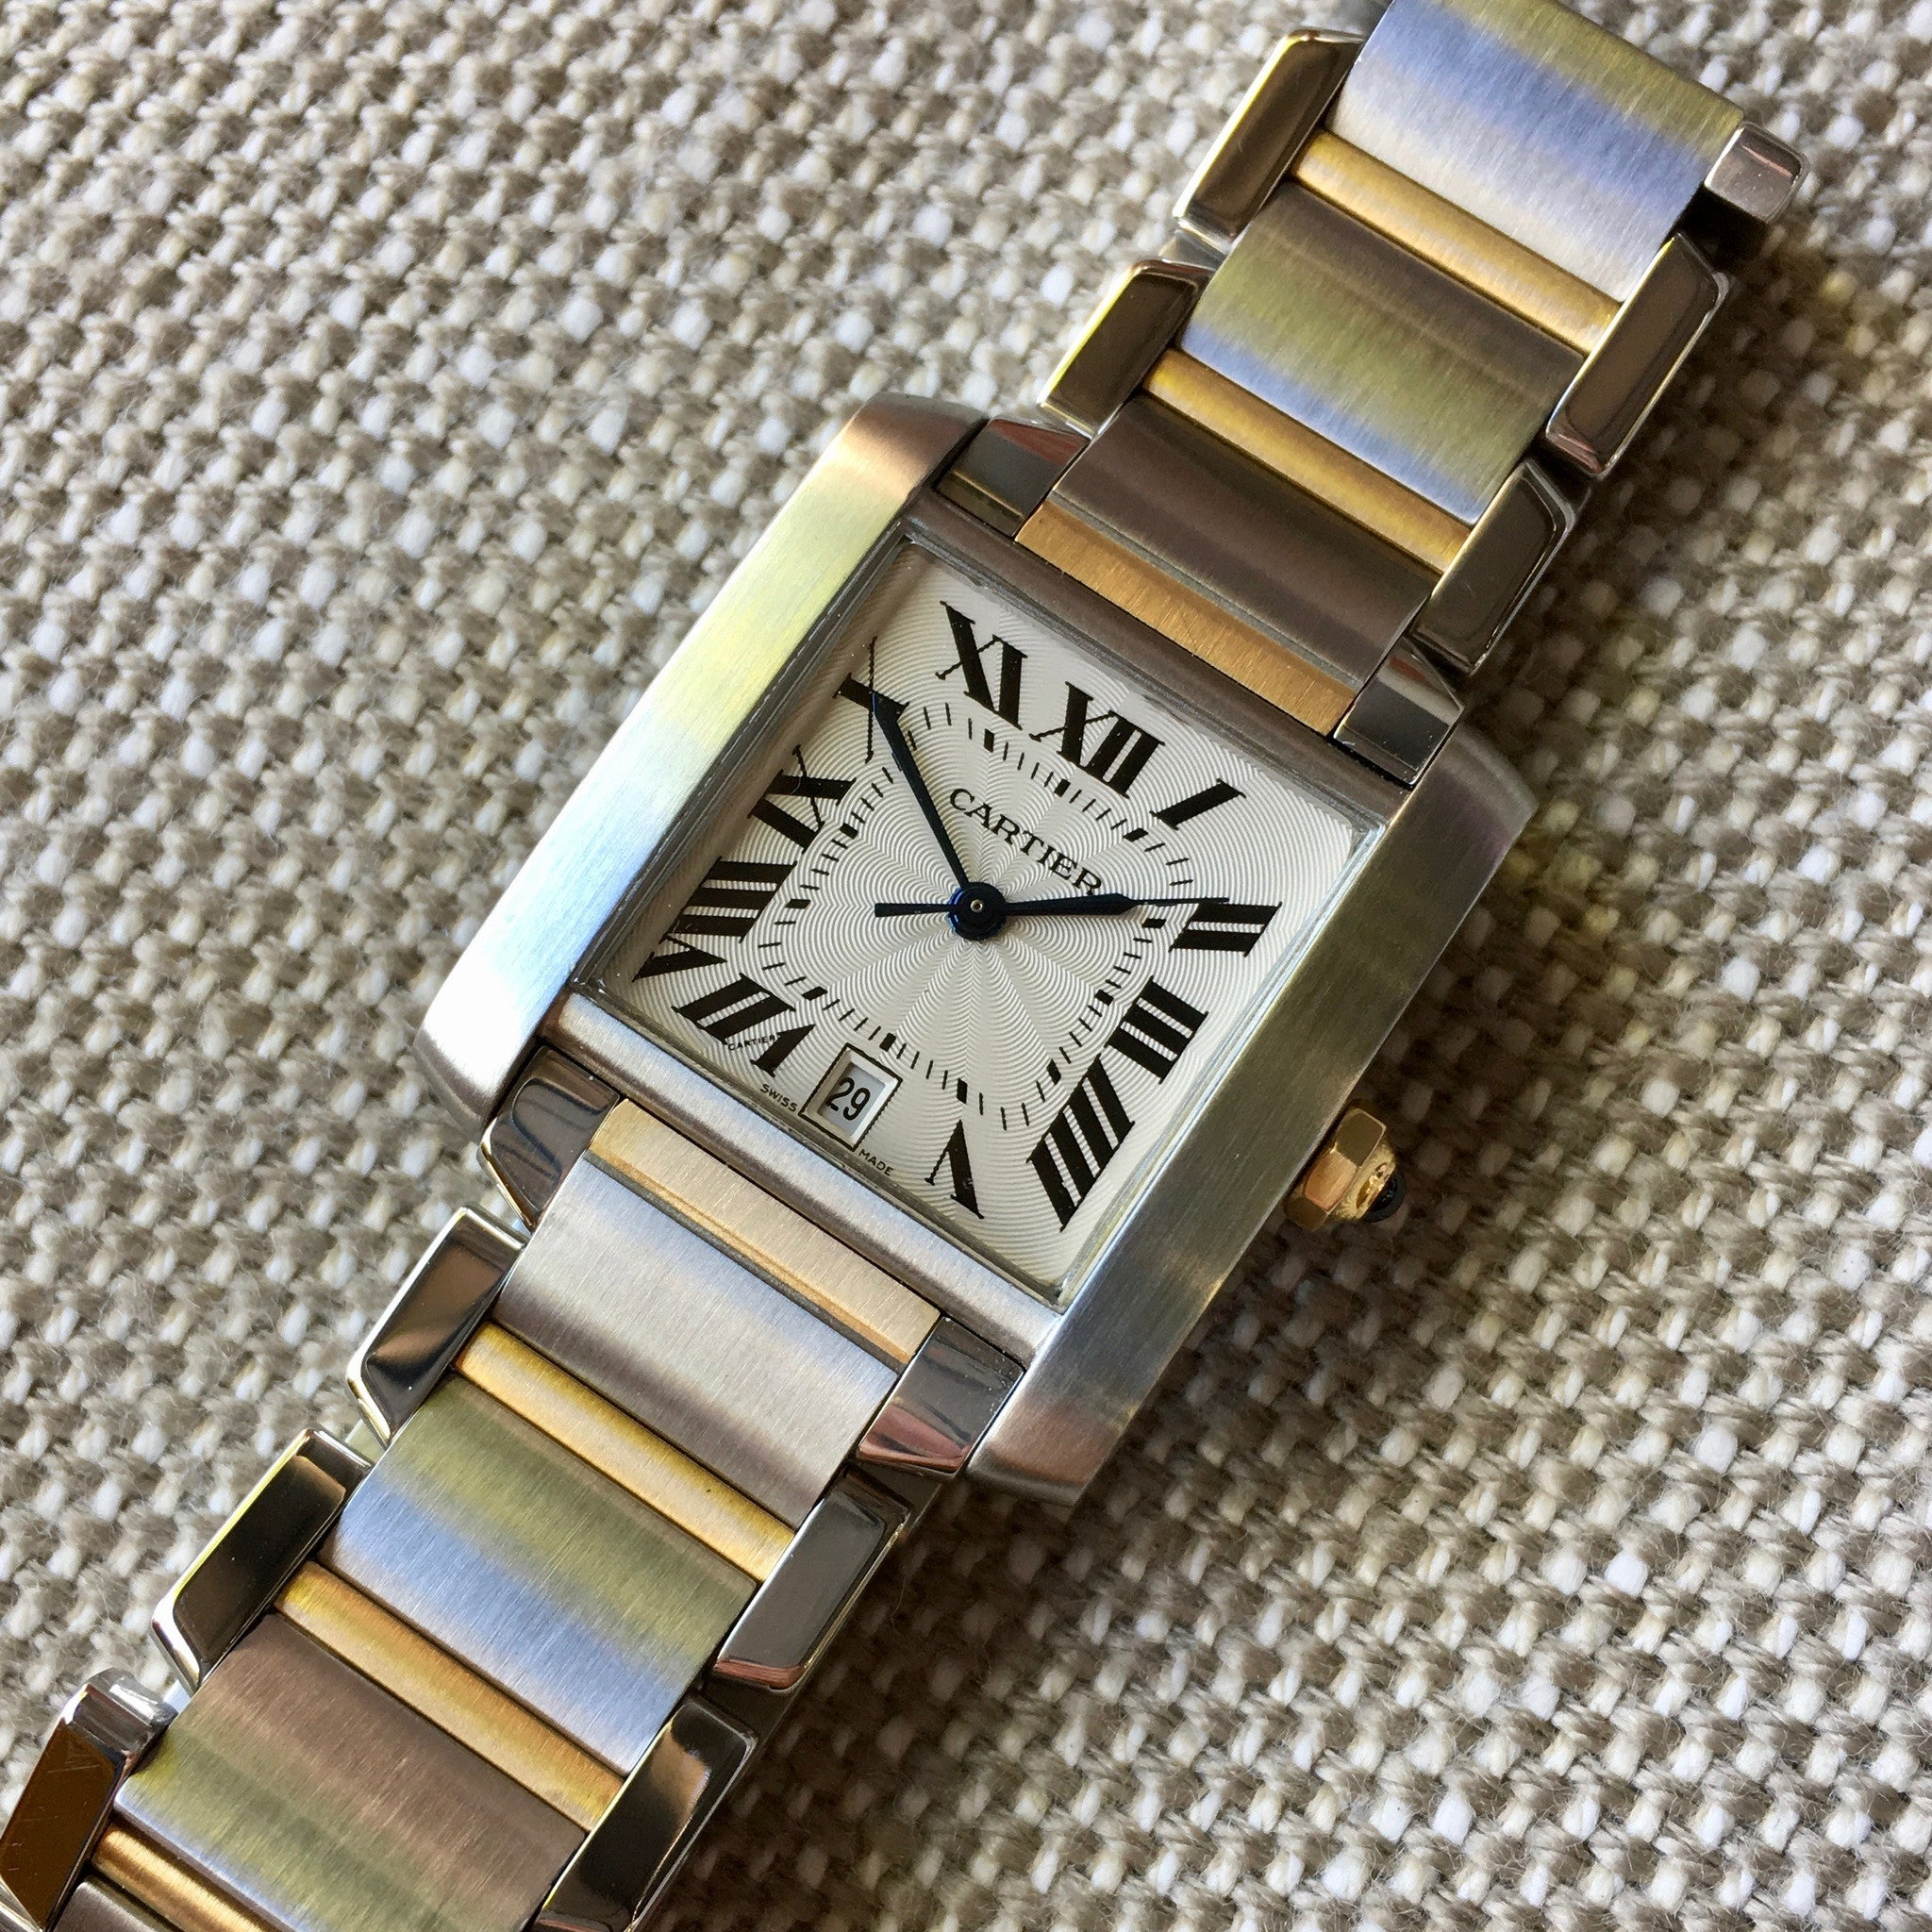 Cartier Tank Francaise 2302 Two Tone Steel 18k Gold 28mm Wristwatch - Hashtag Watch Company